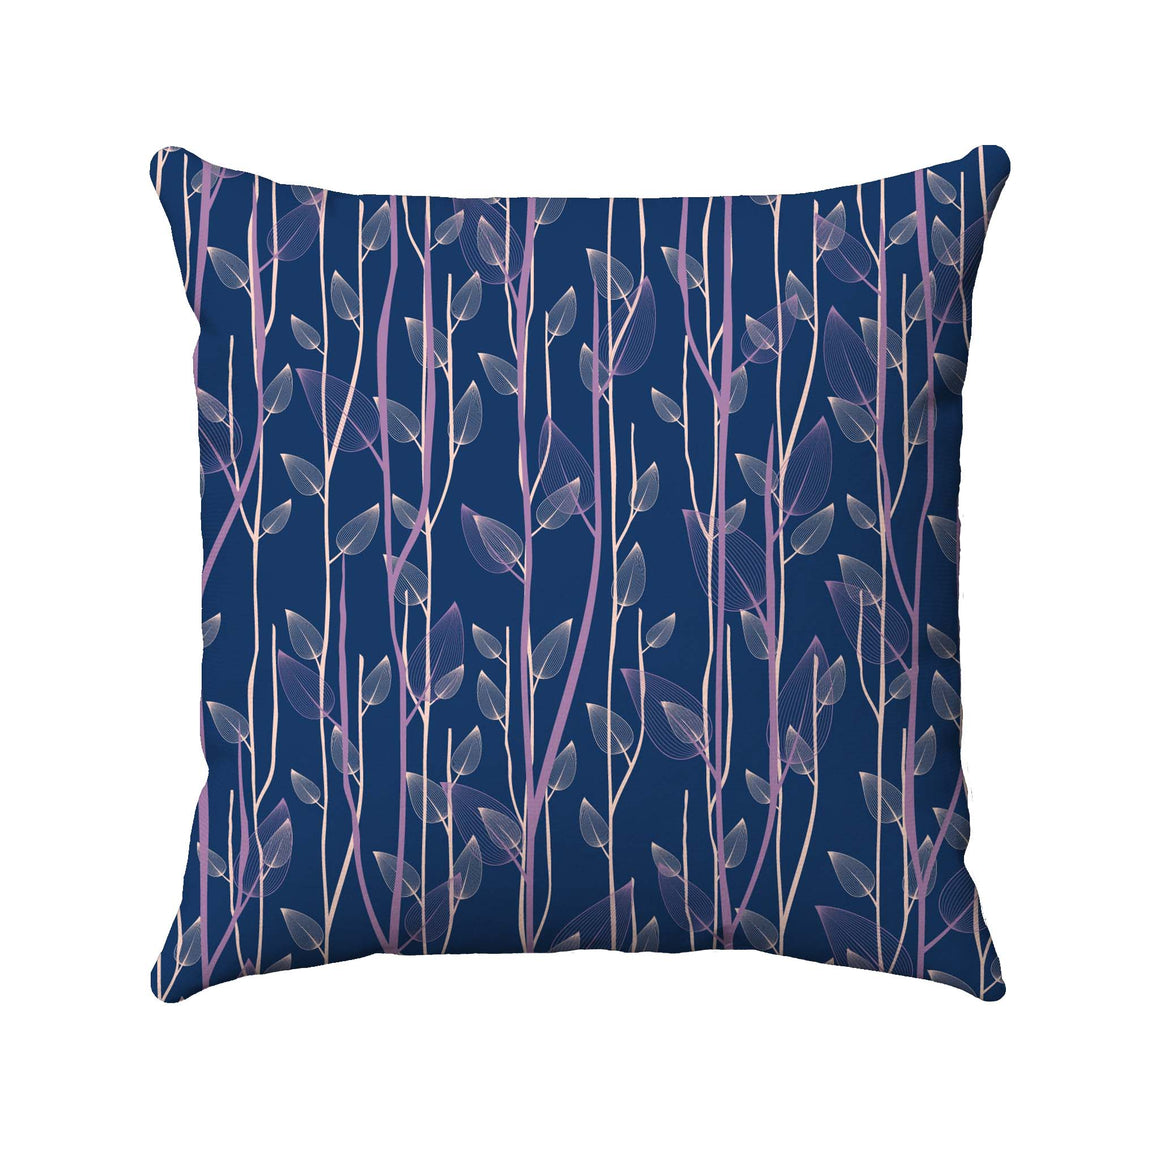 Purple and pink vertical vines with translucent leaves arranged randomly on a navy blue background